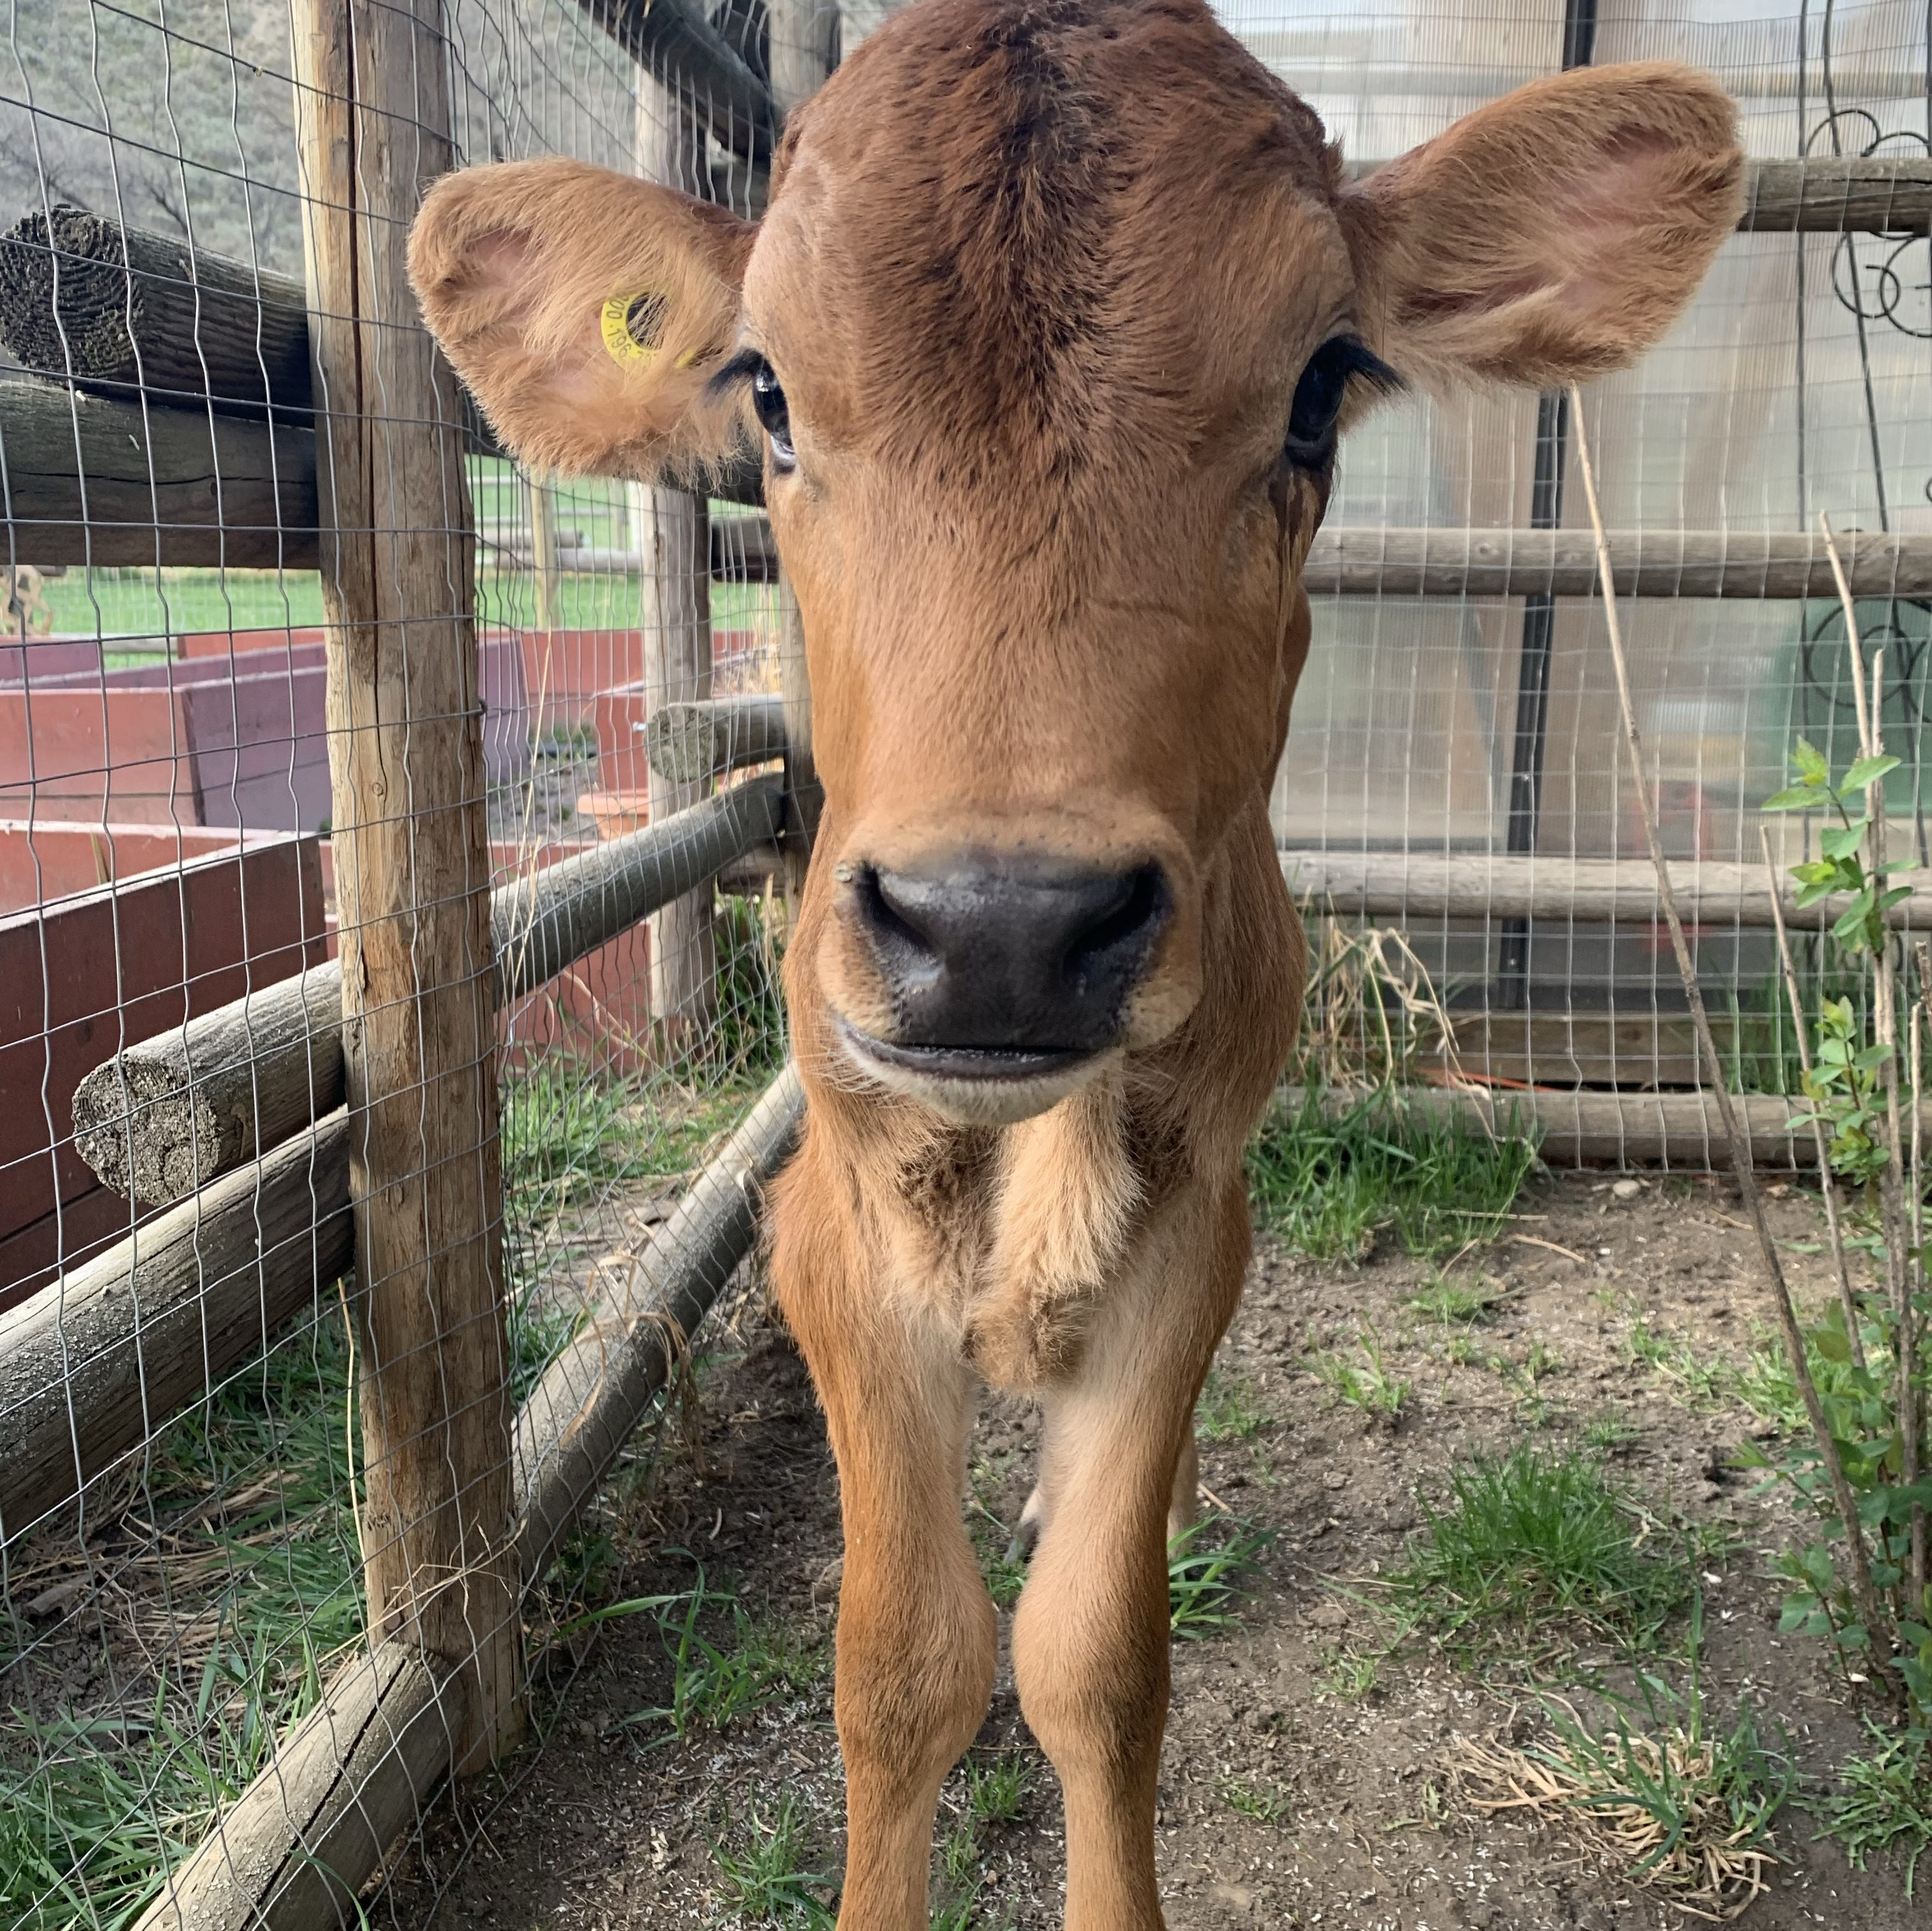 Baby jersey steer calf standing by a fence